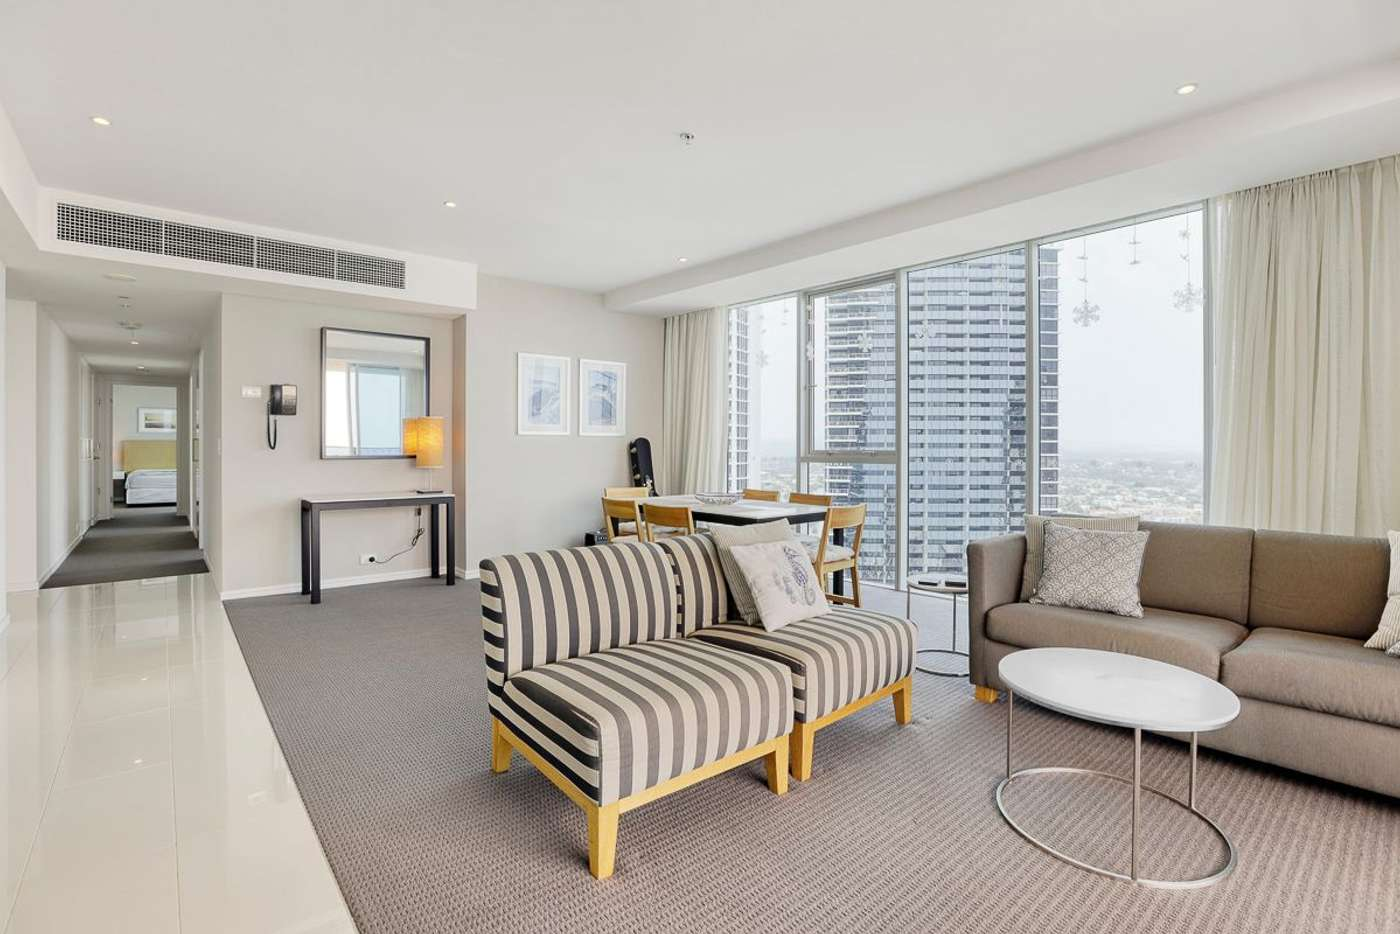 Seventh view of Homely unit listing, 13101/3113 Surfers Paradise Boulevard, Surfers Paradise QLD 4217